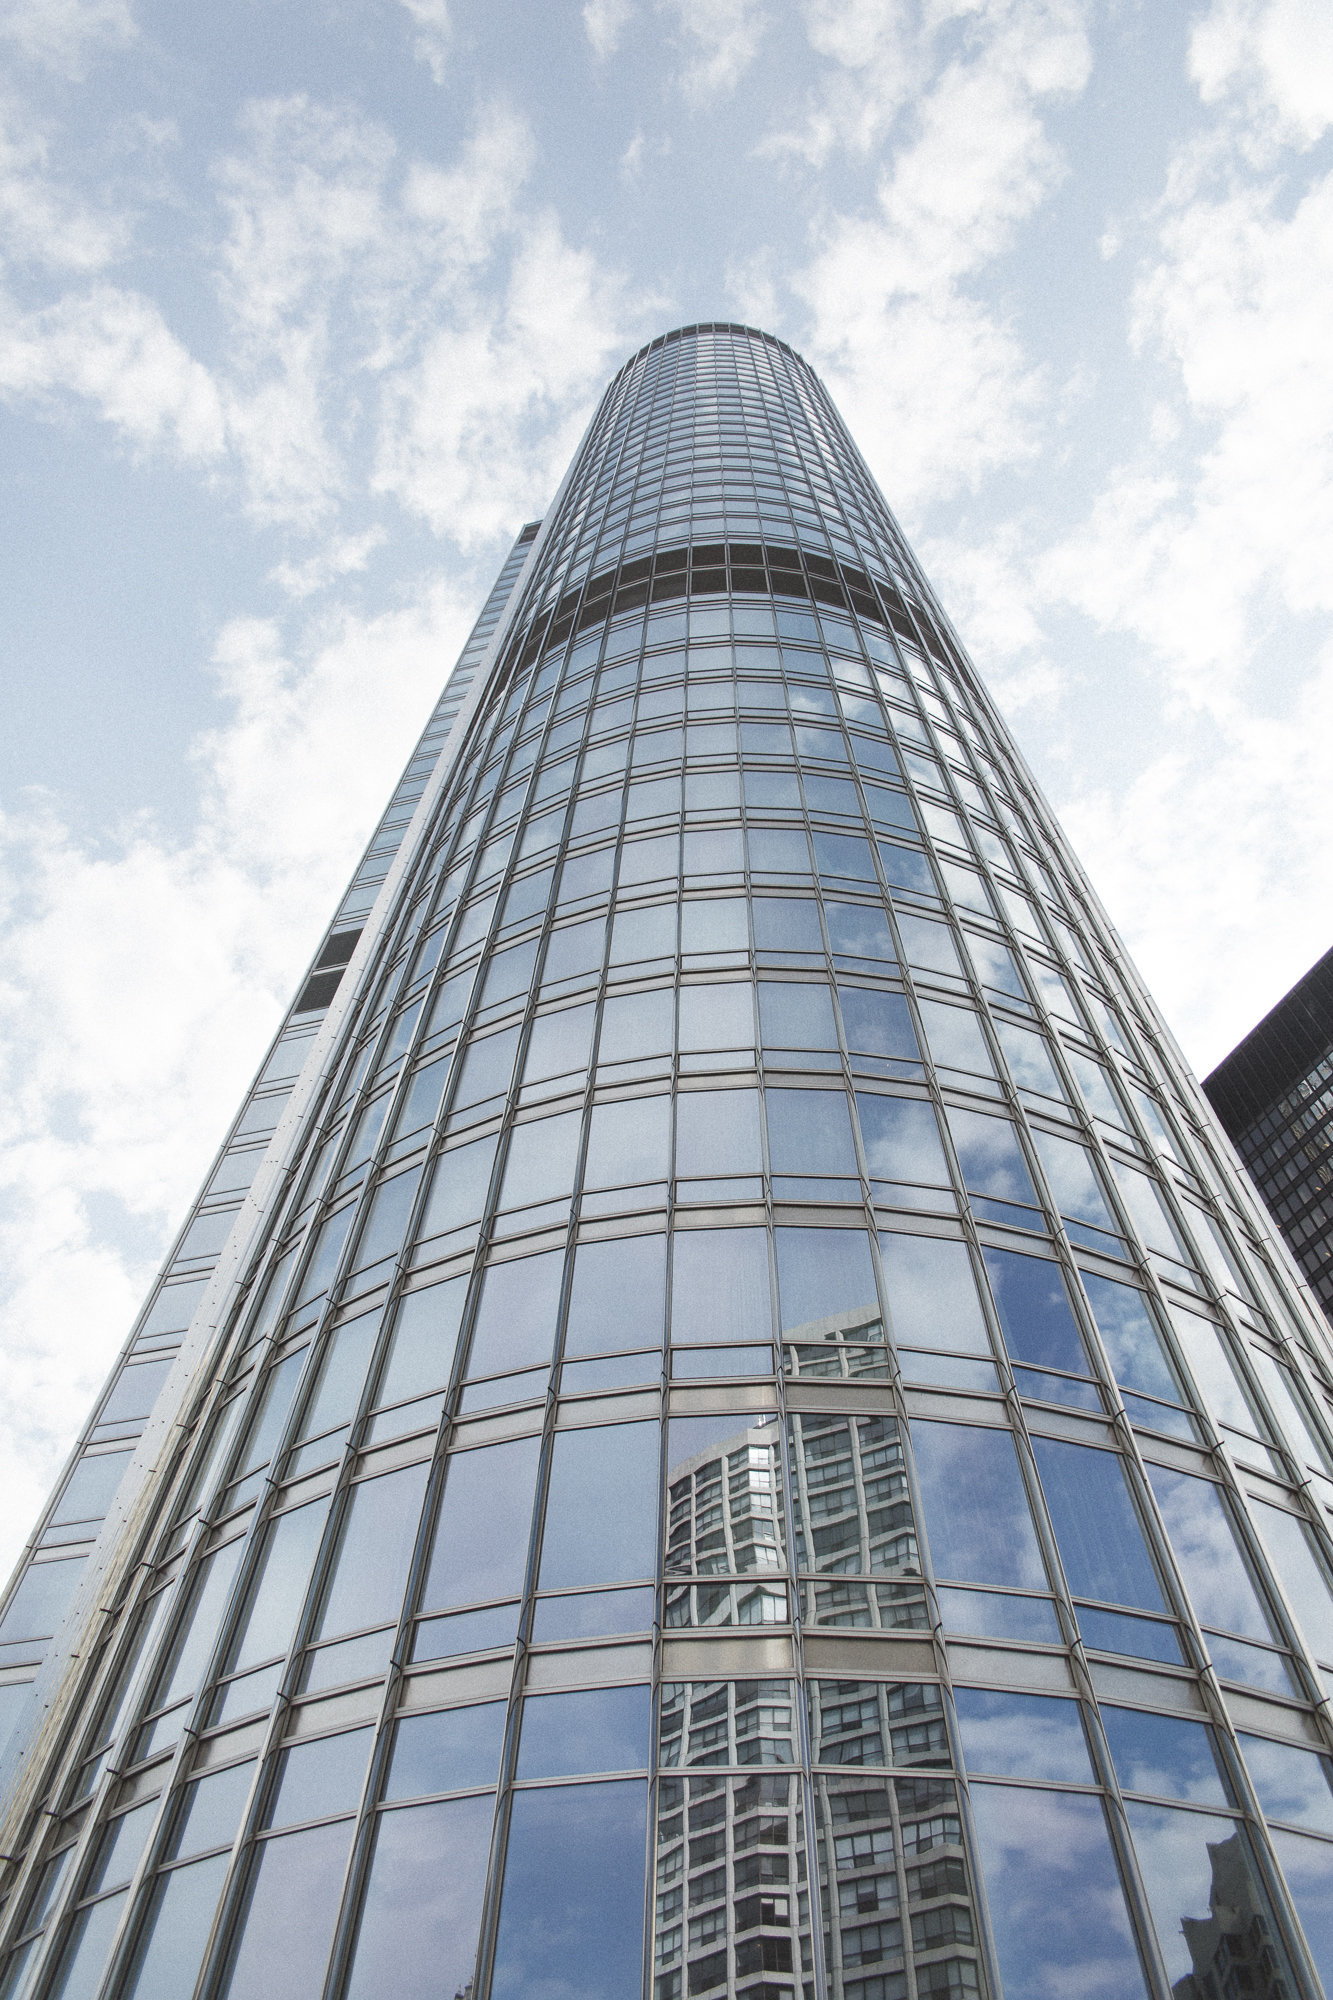 Chicago Illinois - DiBlasio Photography-4